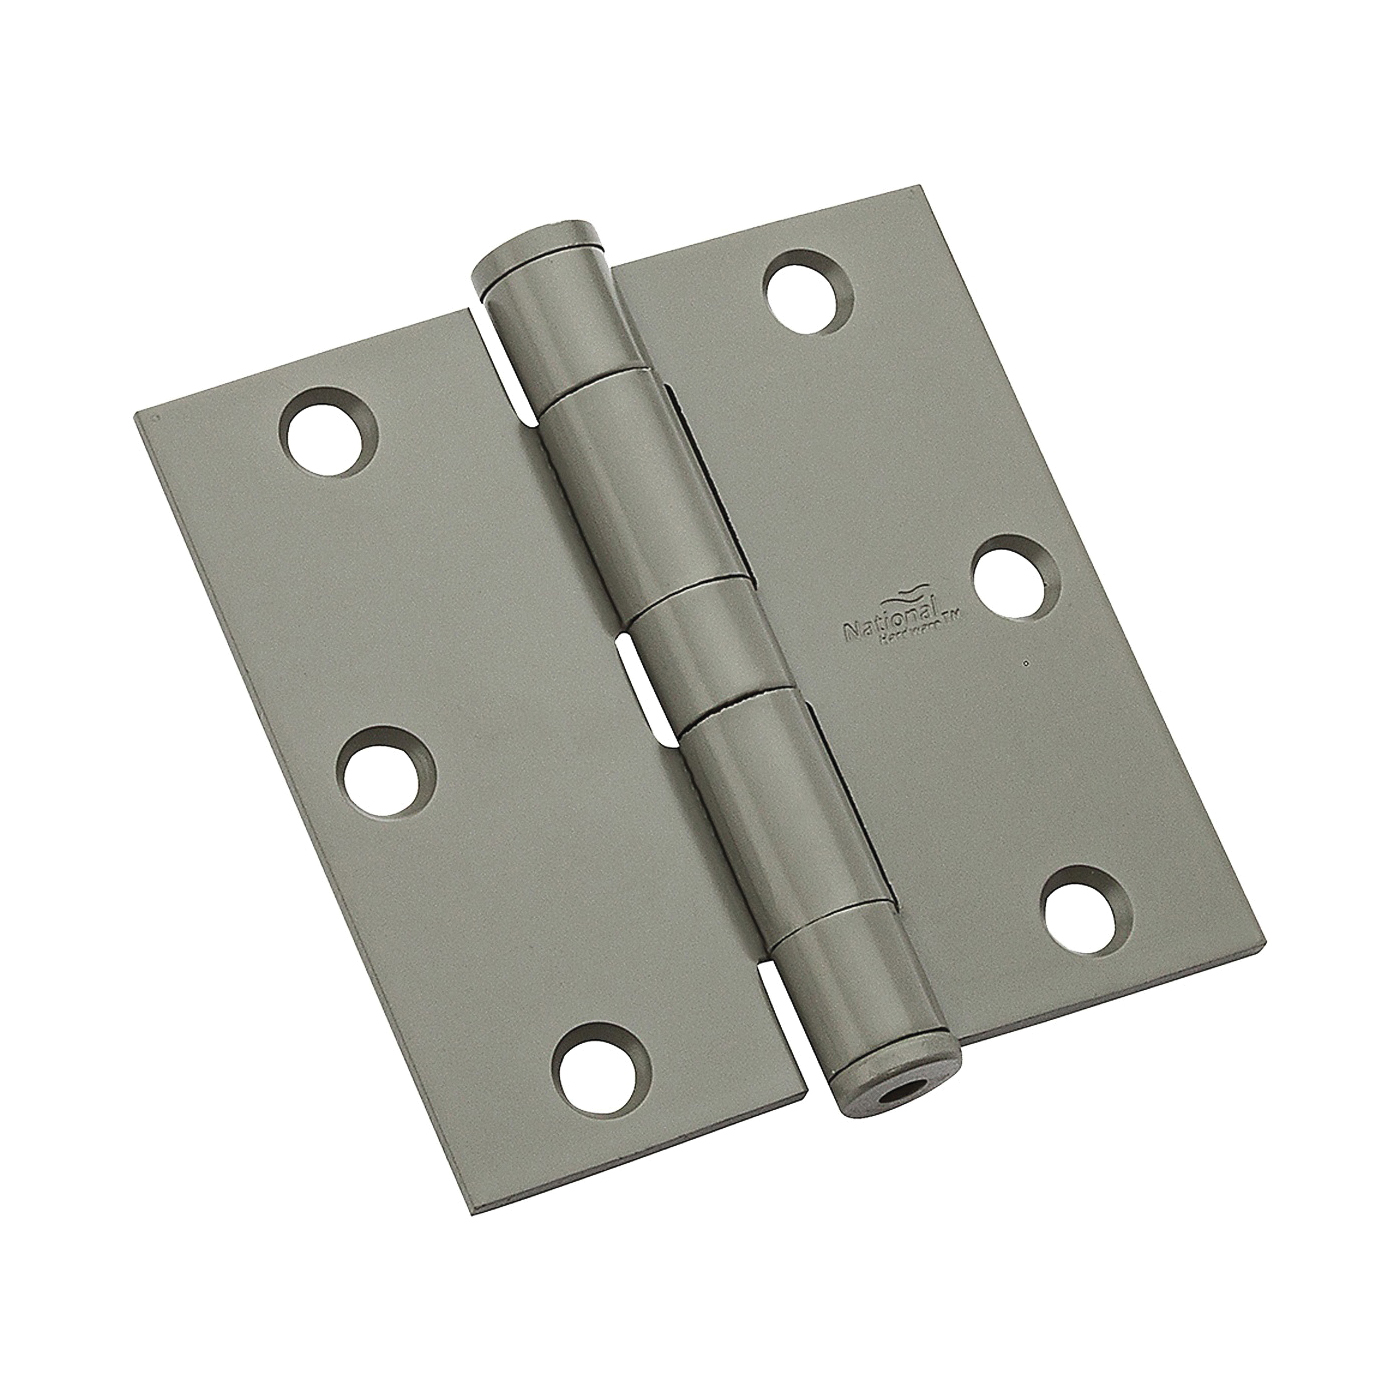 Picture of National Hardware N236-017 Template Hinge, Steel, Prime Coat, Non-Rising, Removable Pin, 80 lb